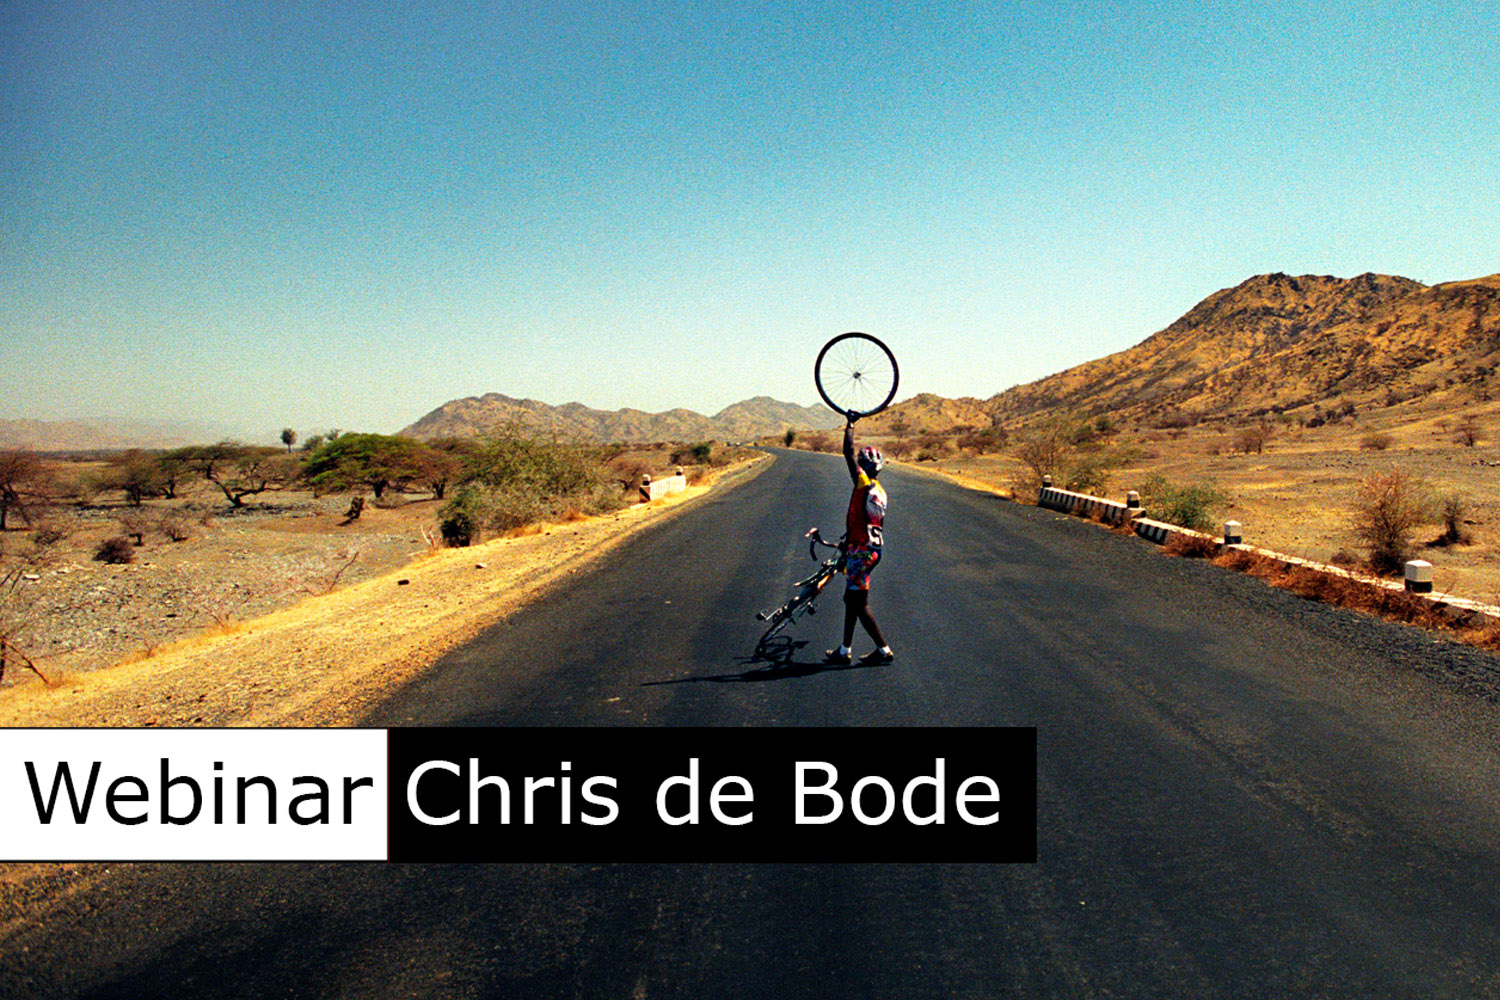 Chris de Bode